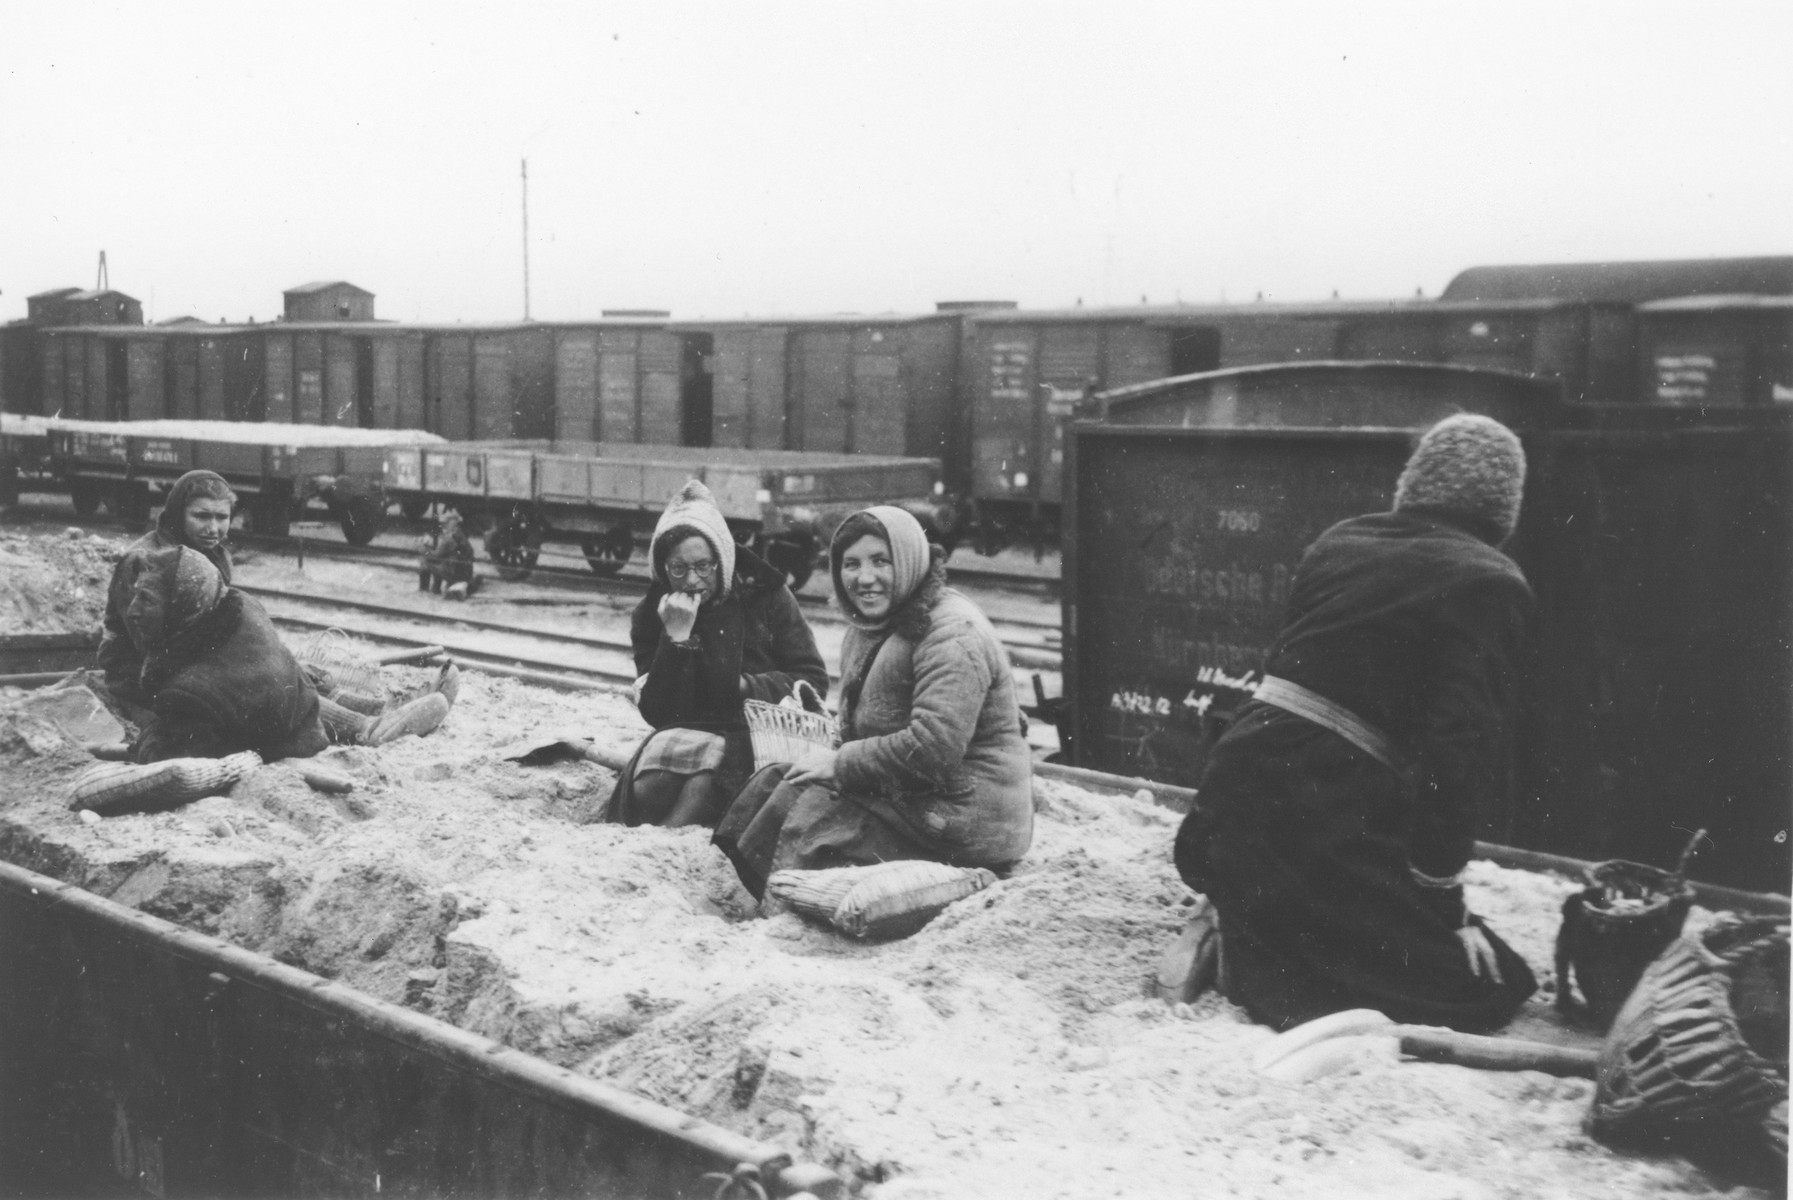 A group of Jewish women rest on top of a pile of dirt on a rail car where they have been shoveling.